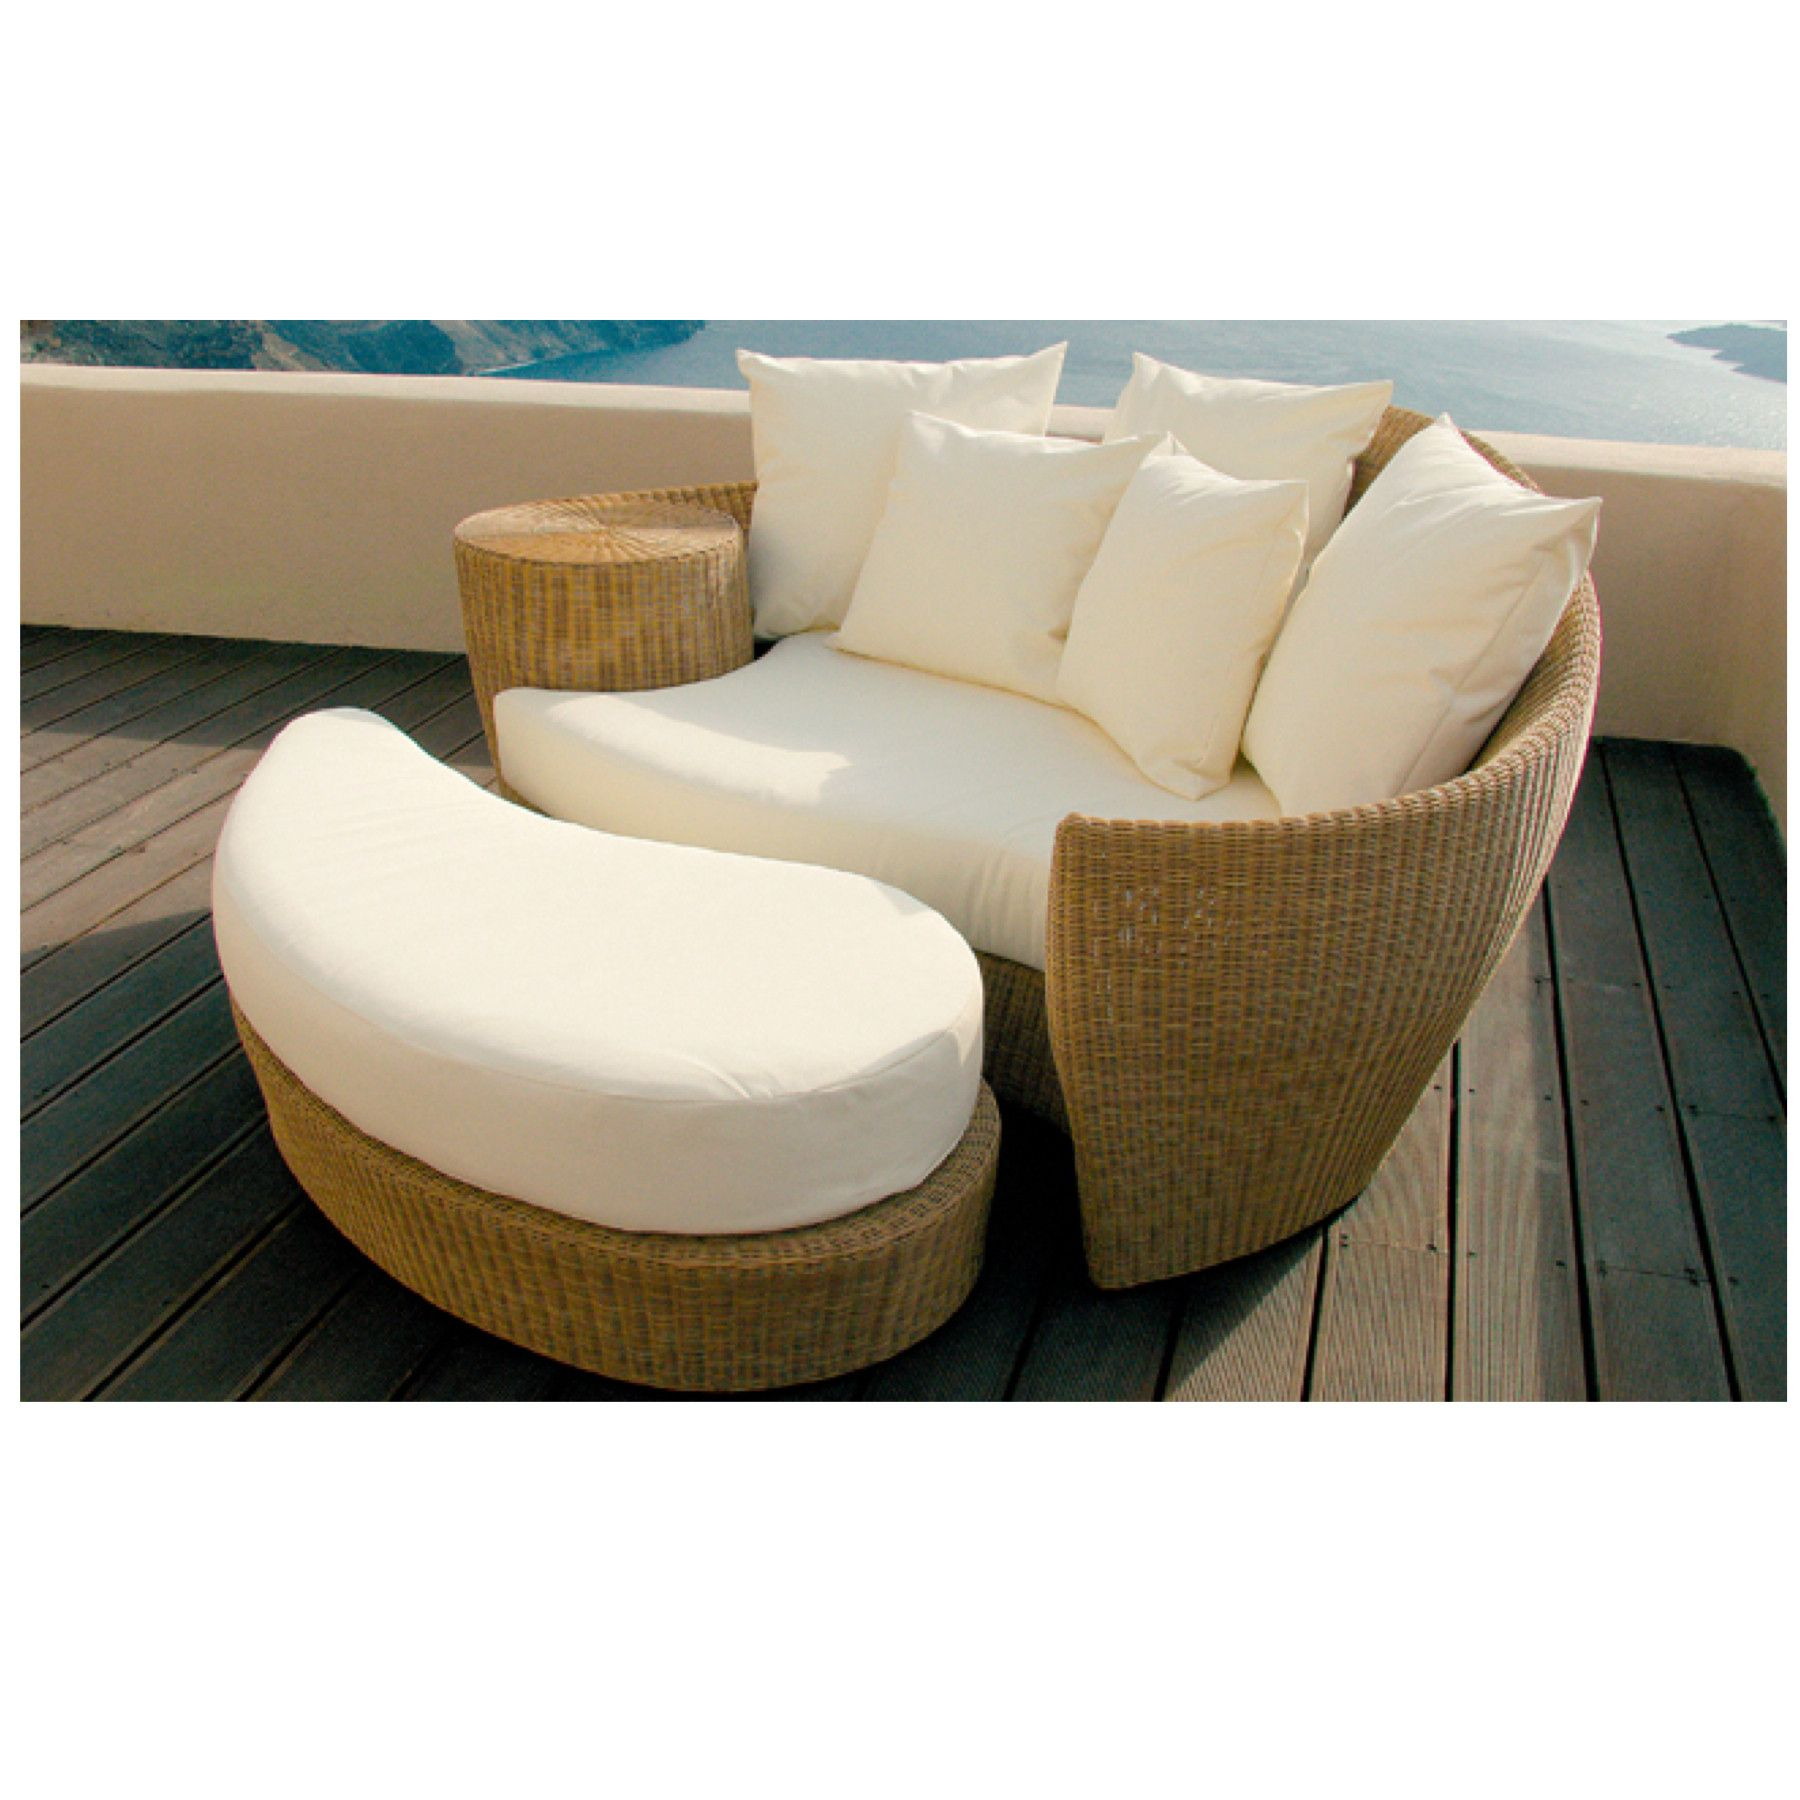 dune outdoor furniture. TRO08001 OHMM® Dune Outdoor Daybed Furniture